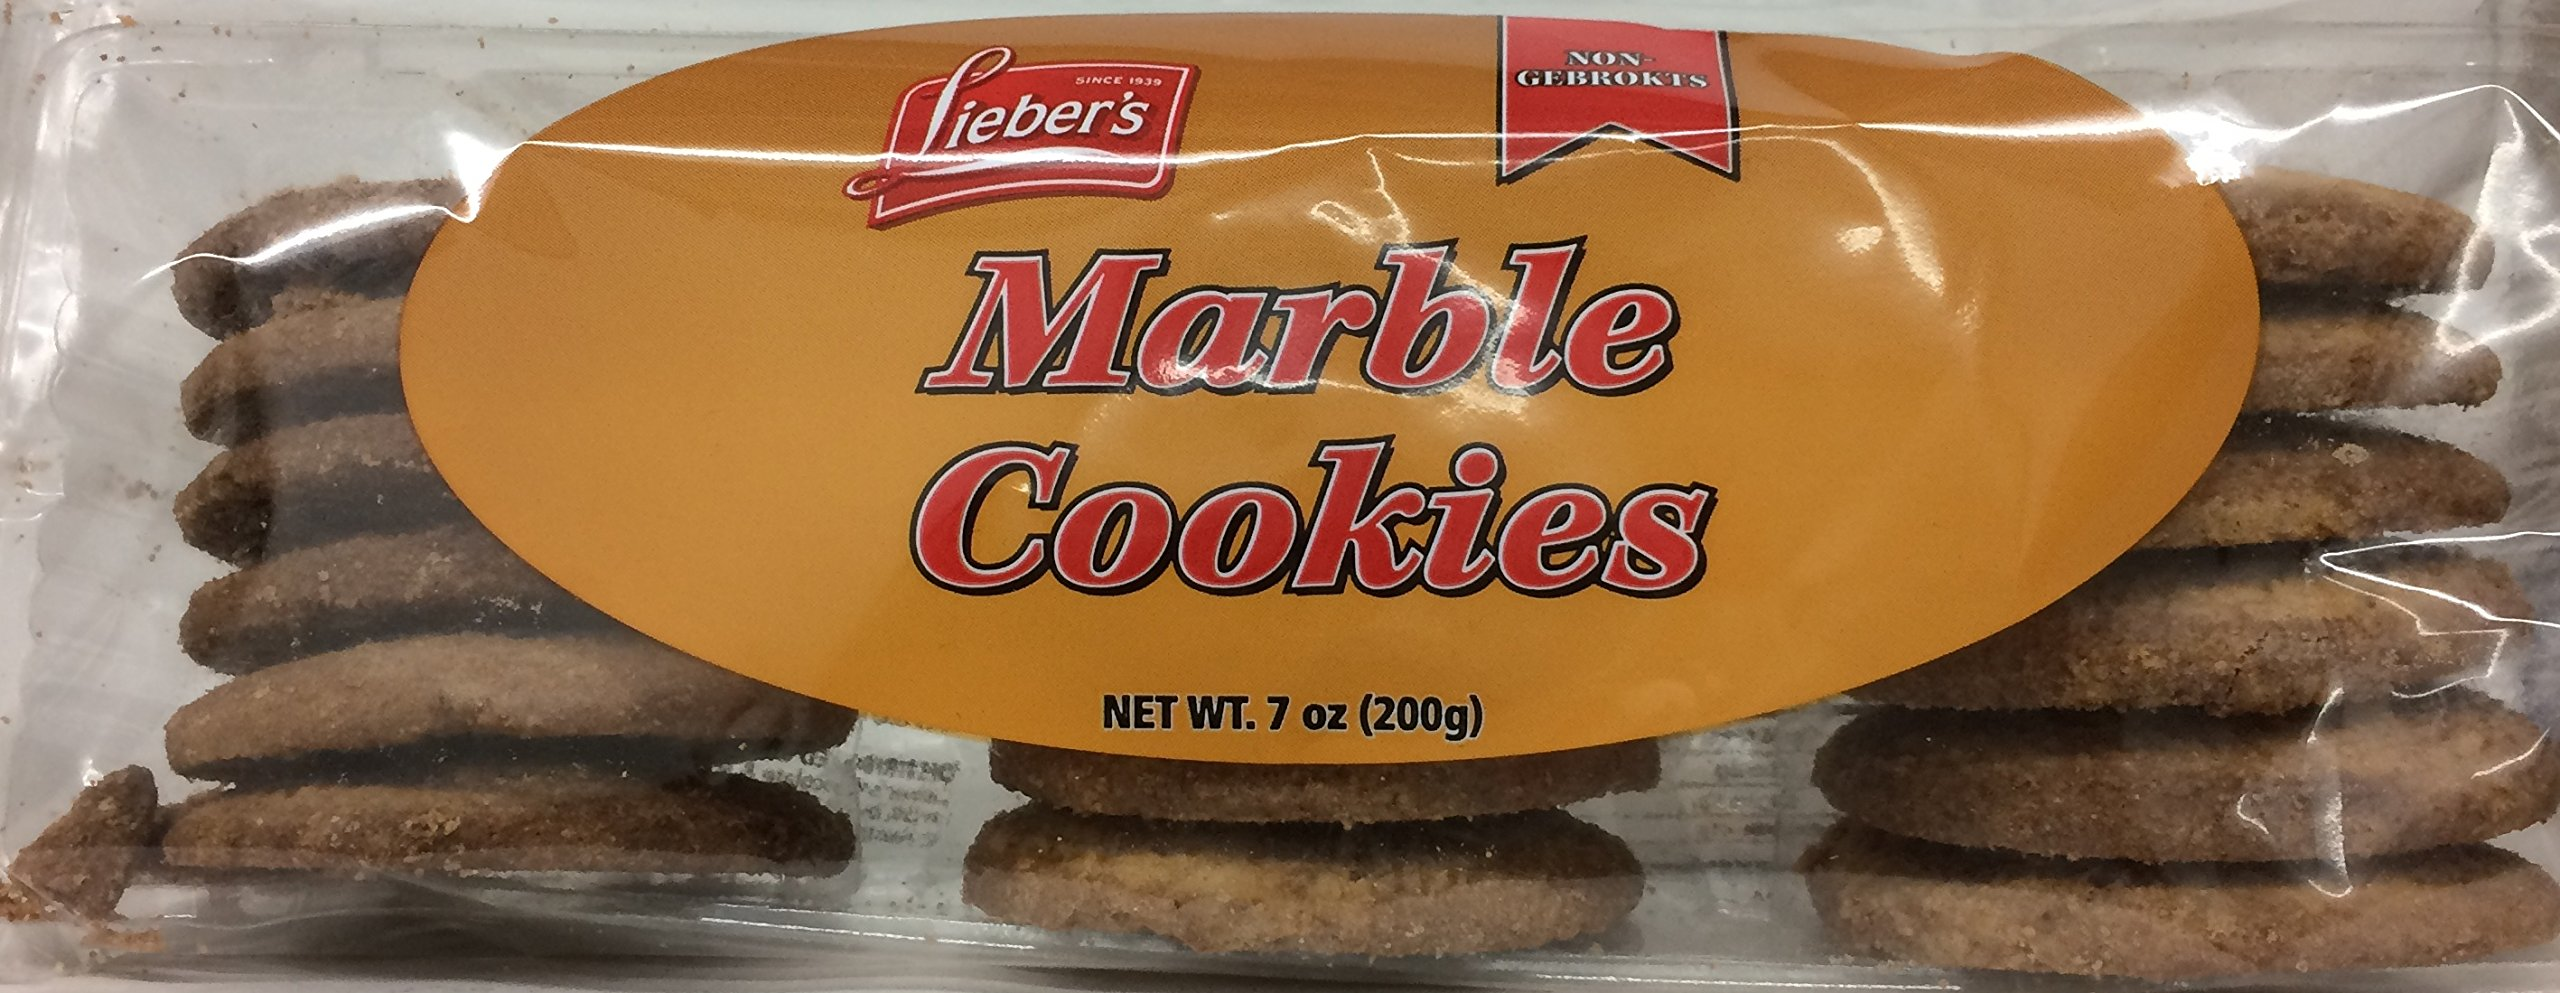 Lieber's Marble Cookies Non Gebrokts Kosher For Passover 7 Oz. Pack Of 3.